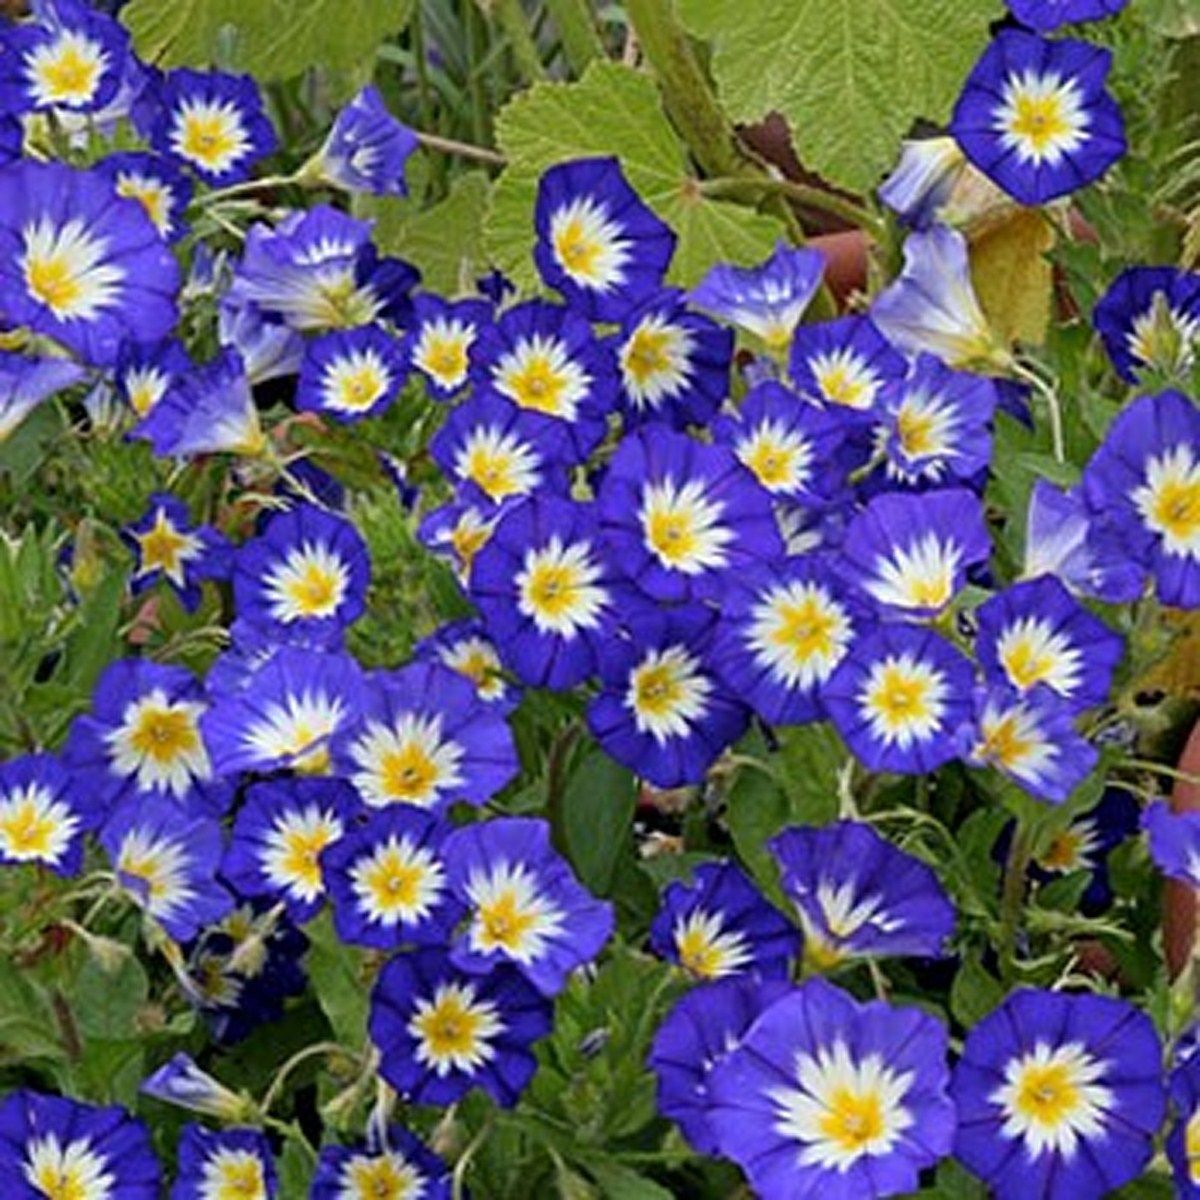 Morning Glory Ensign Blue Convolvulus Tricolor Minor 50 Seeds Ebay Morning Glory Seeds Morning Glory Flowers Blue Morning Glory